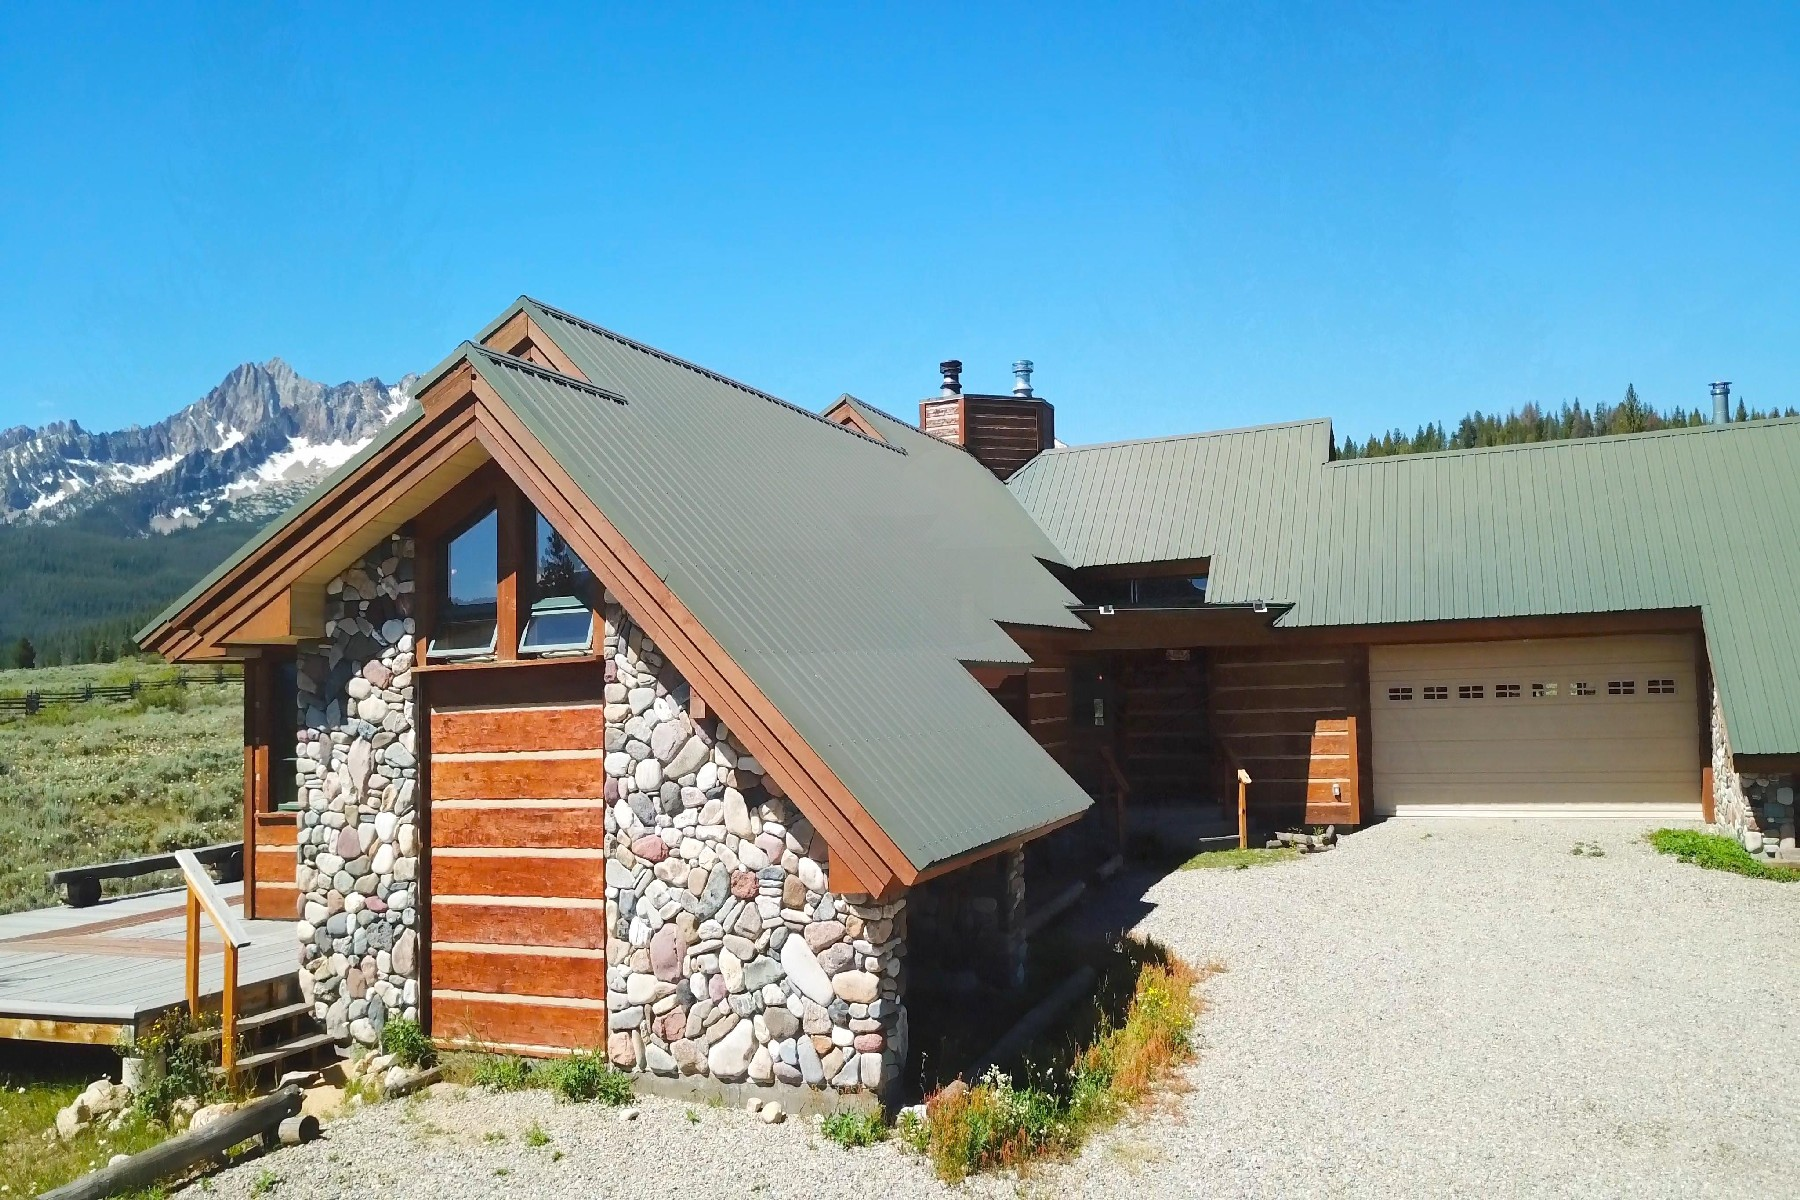 Single Family Home for Active at Spectacular Sawtooth Home 475 Goat Creek Way Stanley, Idaho 83278 United States